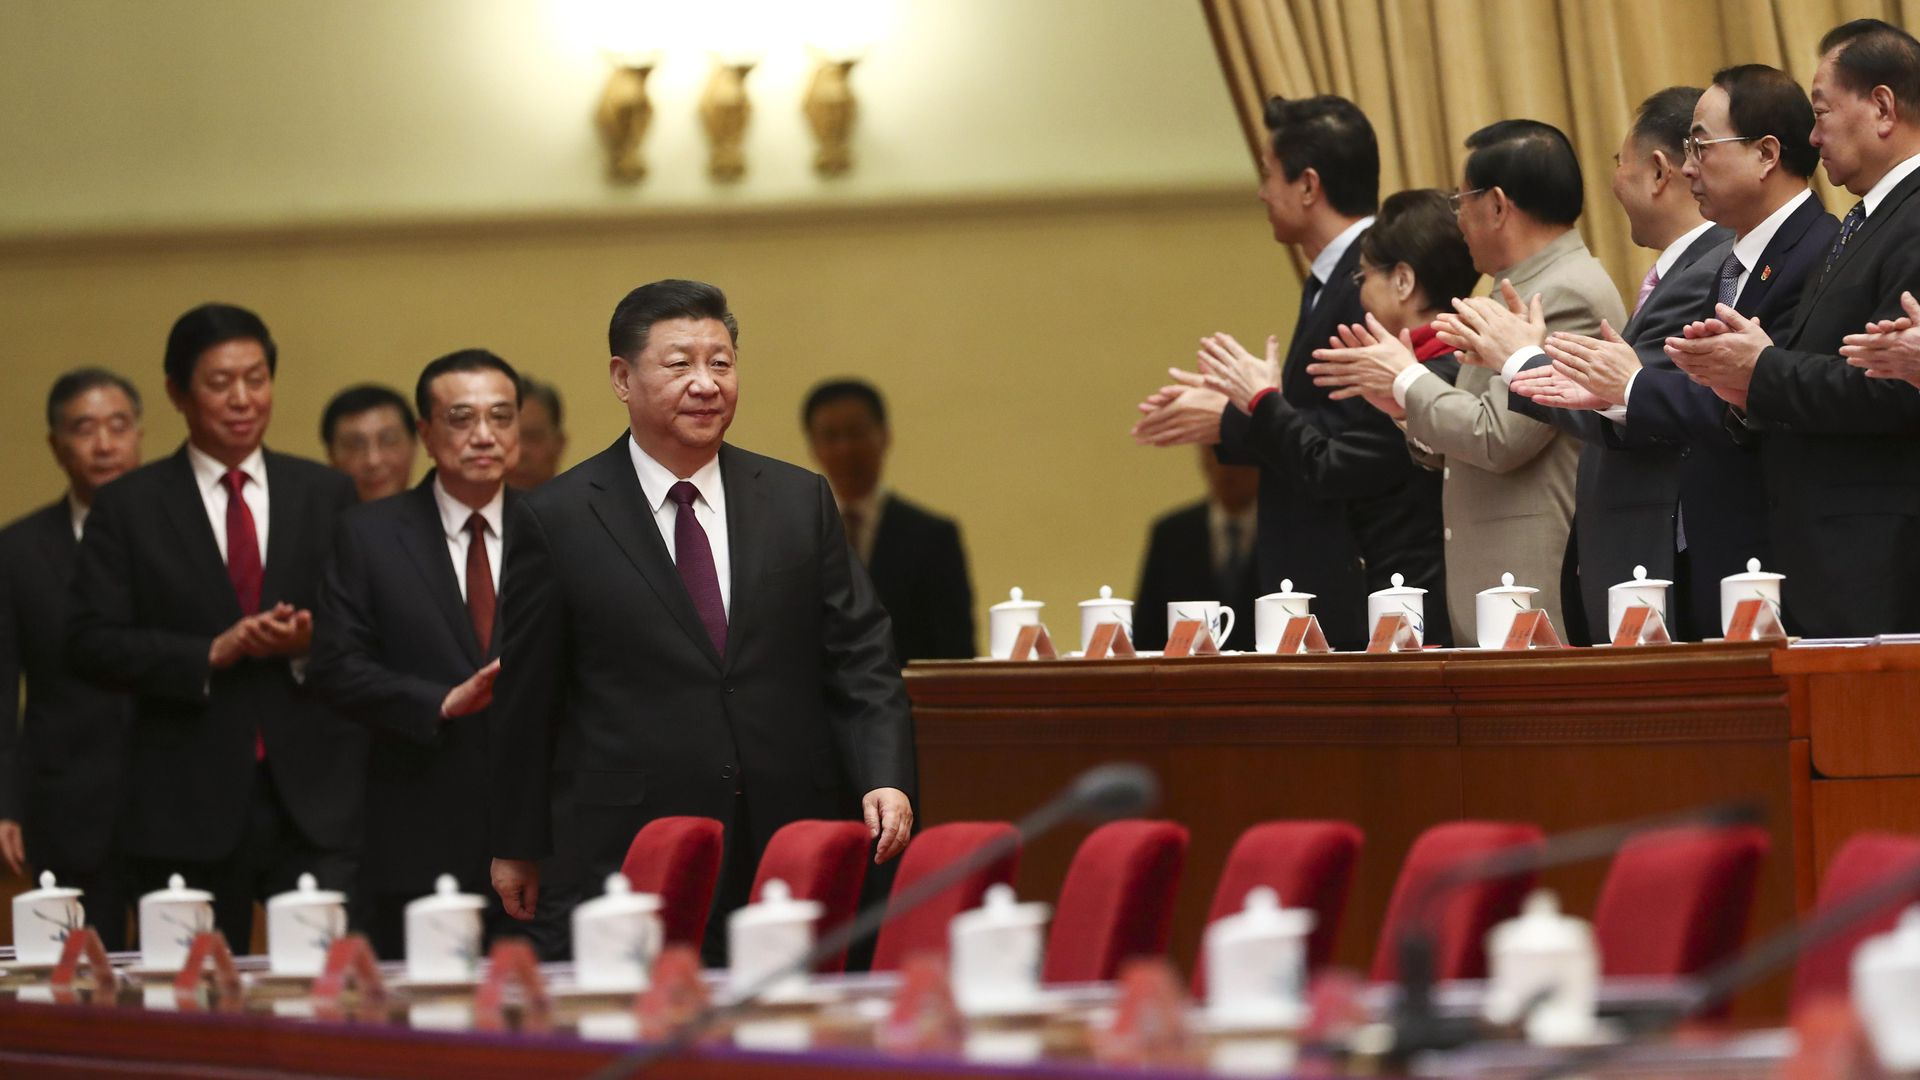 Chinese President Xi Jinping walking through his party headquarters with people clapping